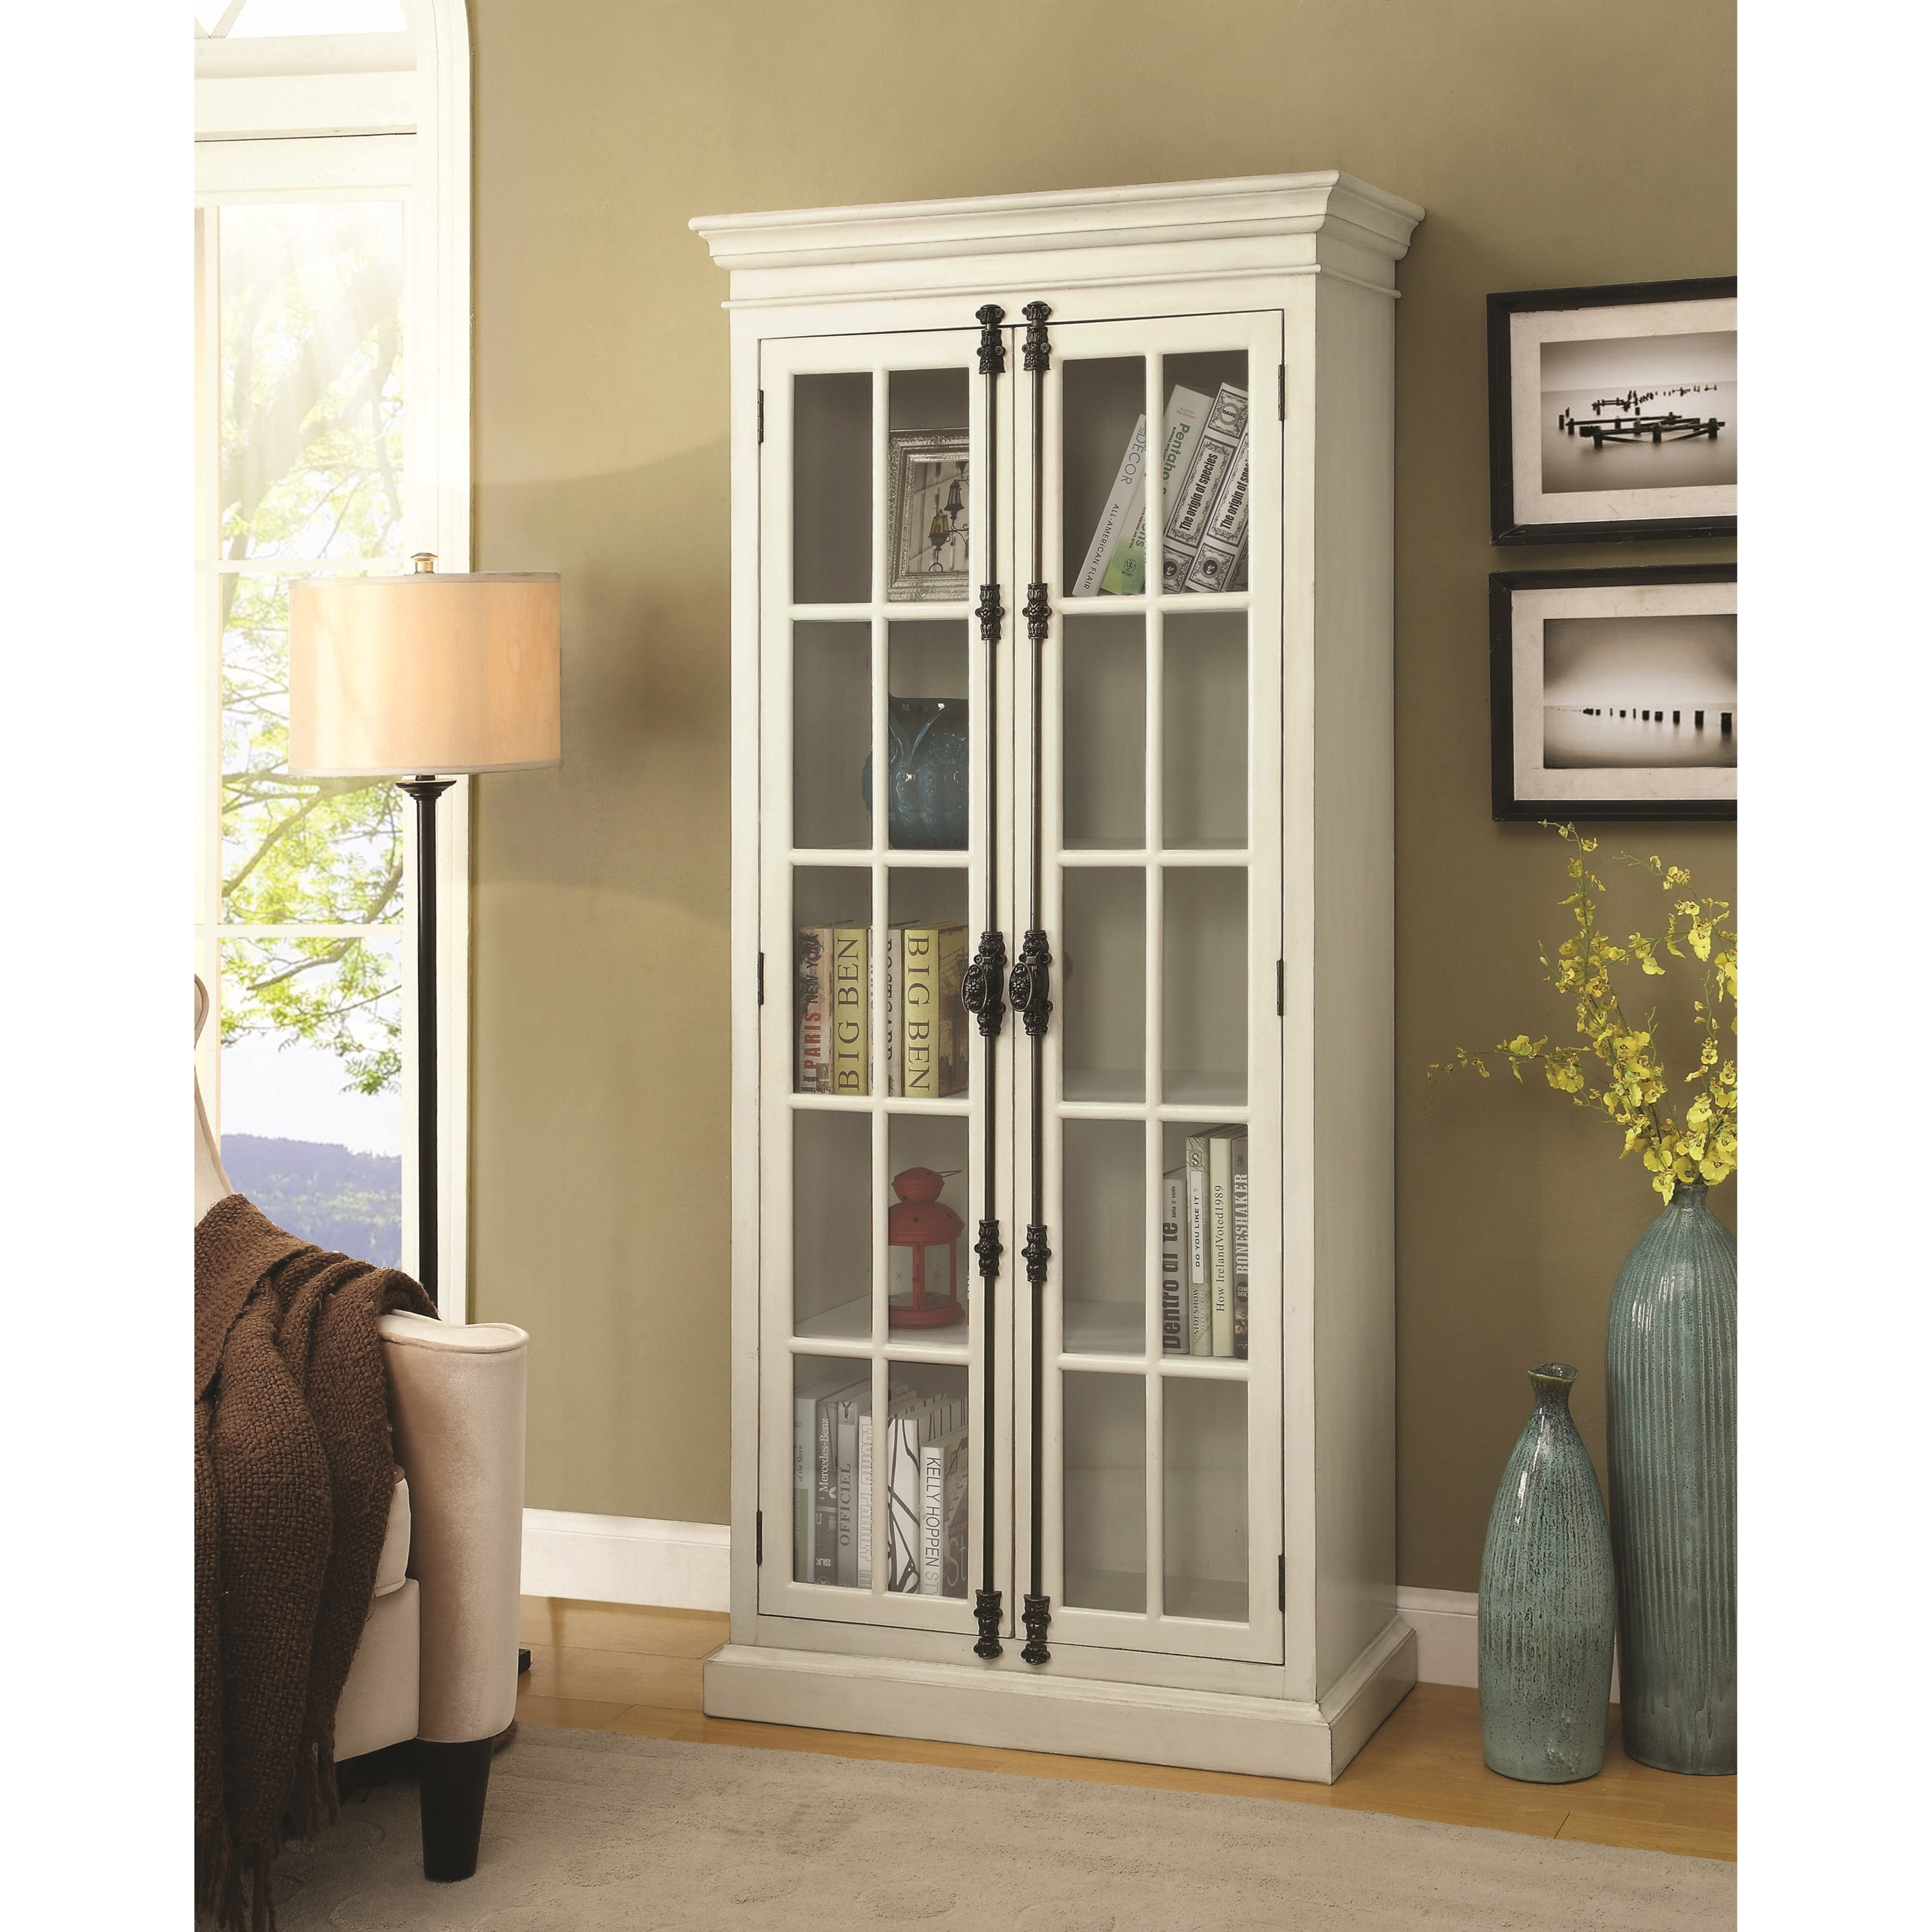 Coaster Curio Cabinets White Curio Cabinet Value City